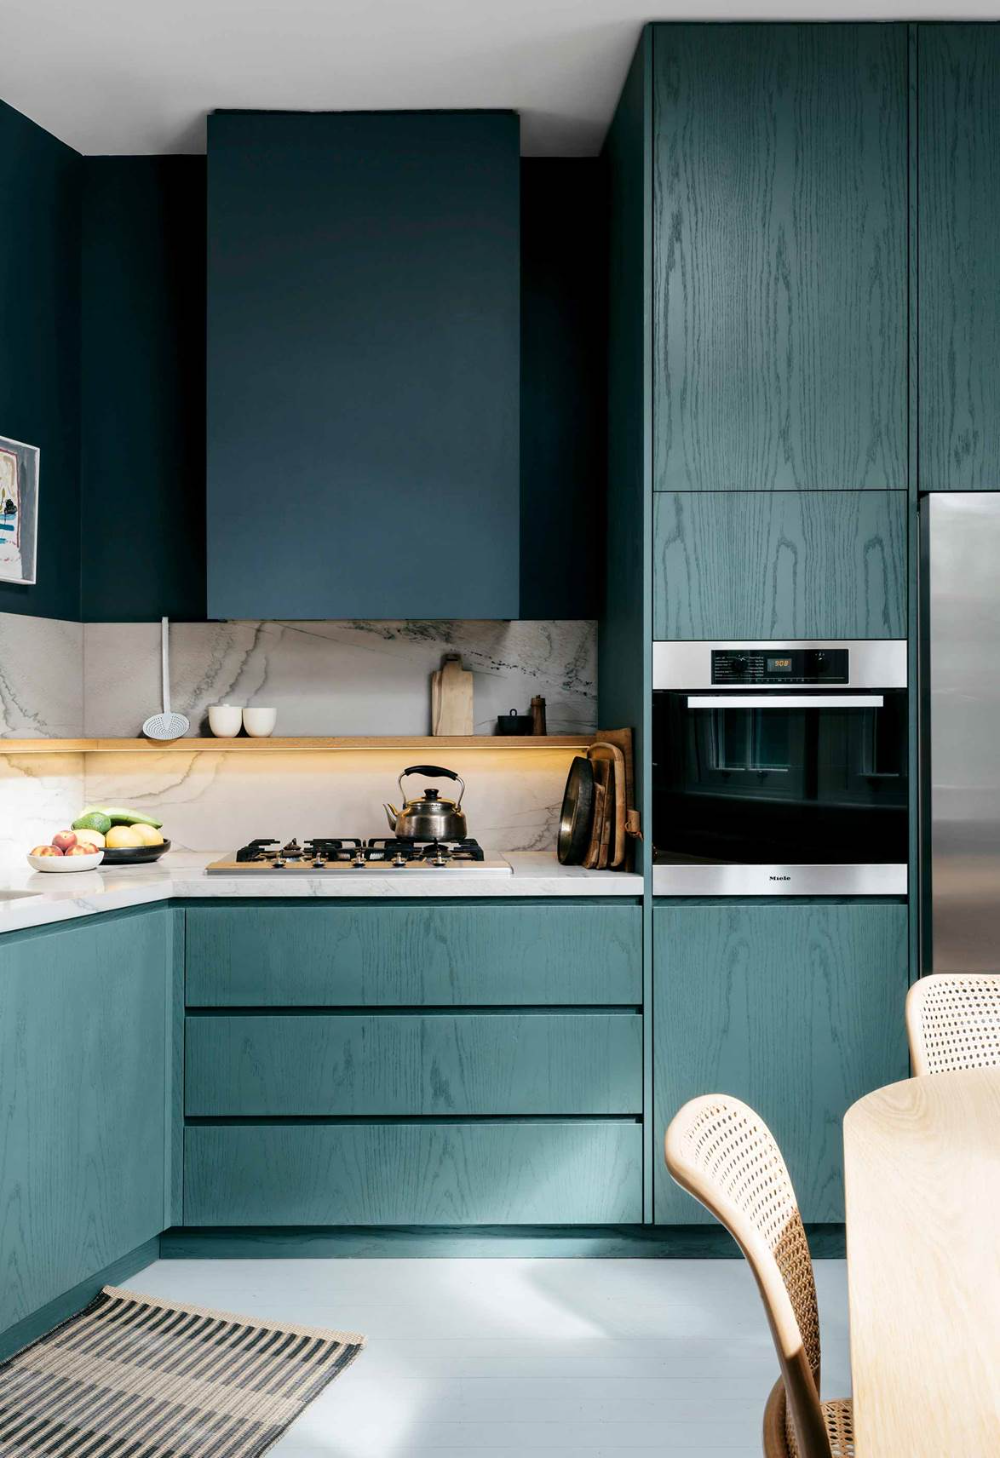 20 kitchen cabinet colour ideas to try in your home